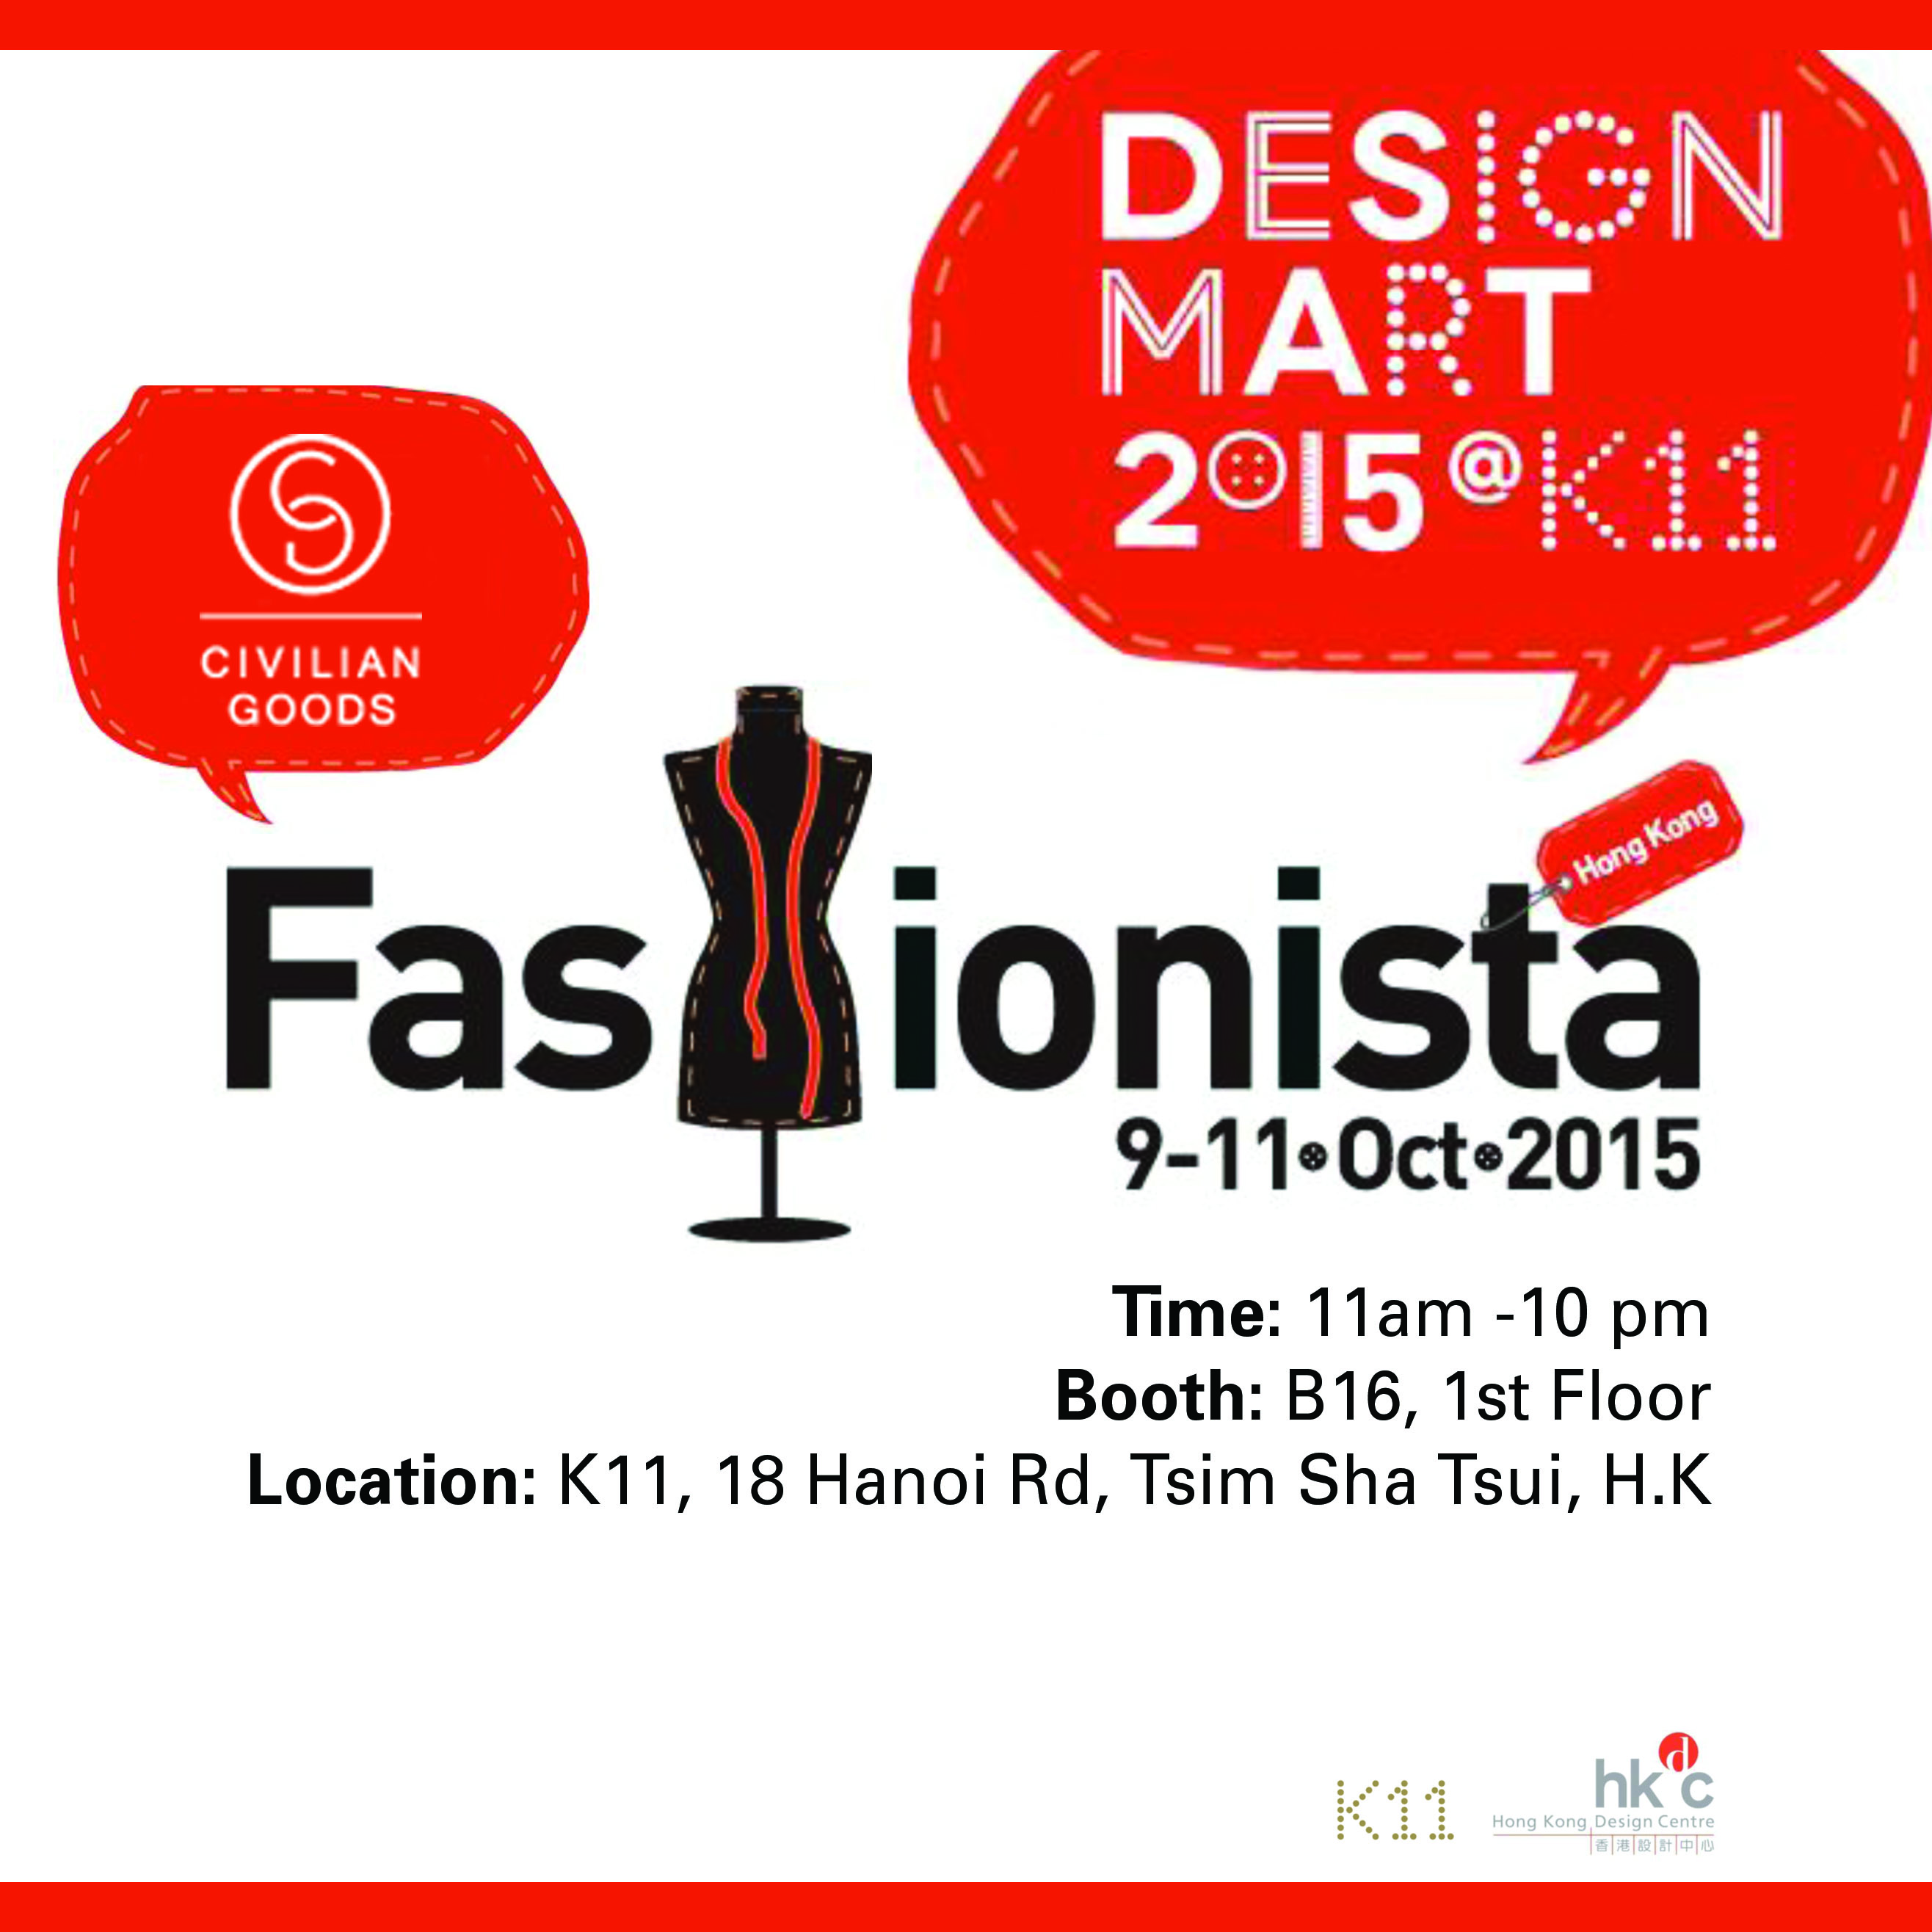 Oct 9th-11th 2015: Design Mart, Hong Kong